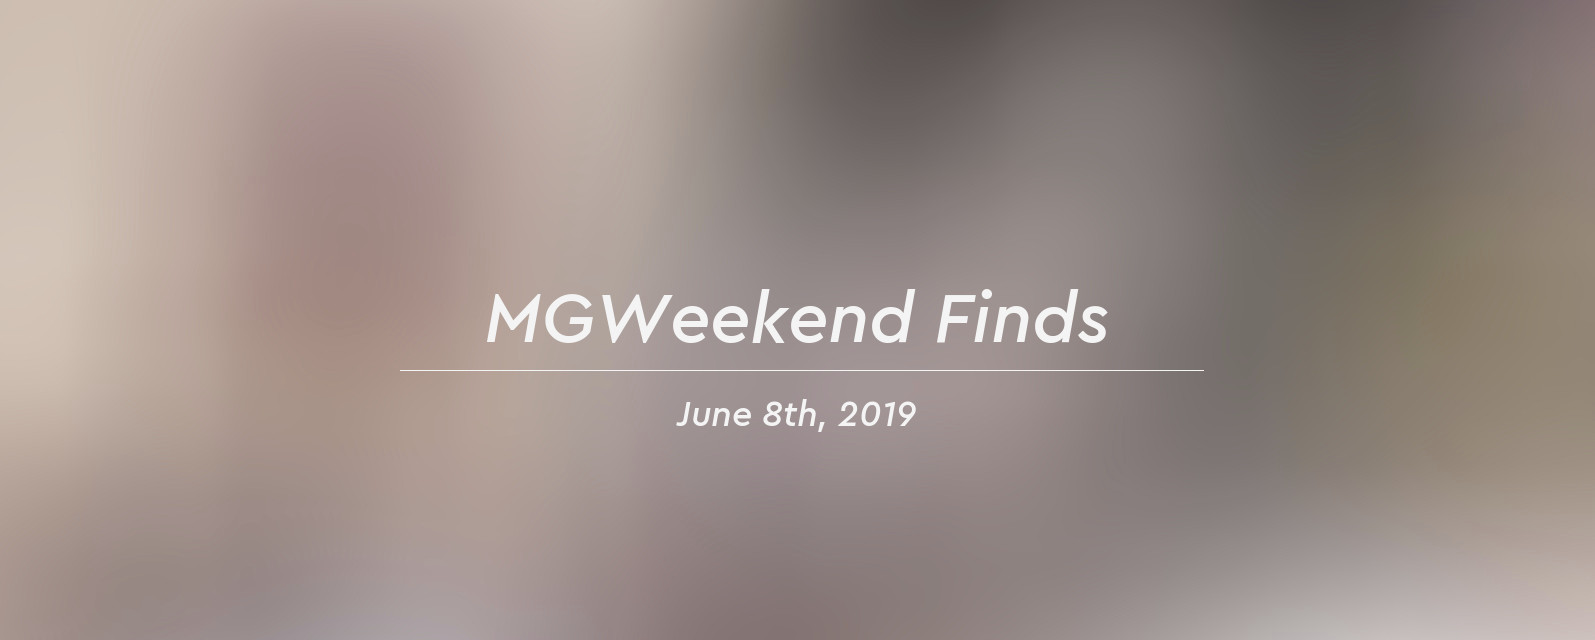 mgw finds 2019 06 08 header